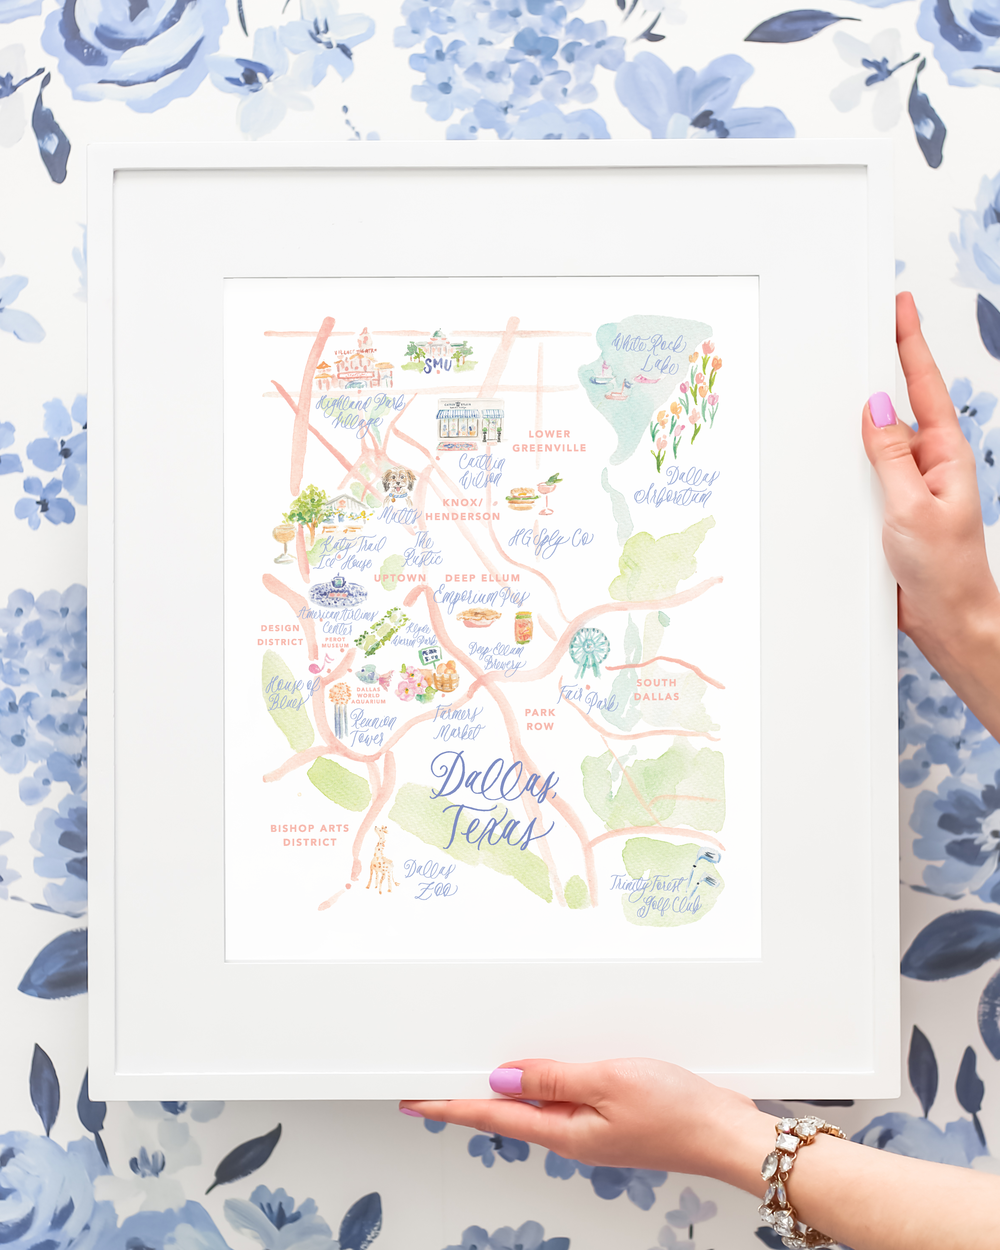 Dallas-Watercolor-Map-Art-Print-by-Simply-Jessica-Marie-_-Photo-by-To-and-From-Gifts-at-the-Caitlin-Wilson-Dallas-Shop-4x5 photo.png